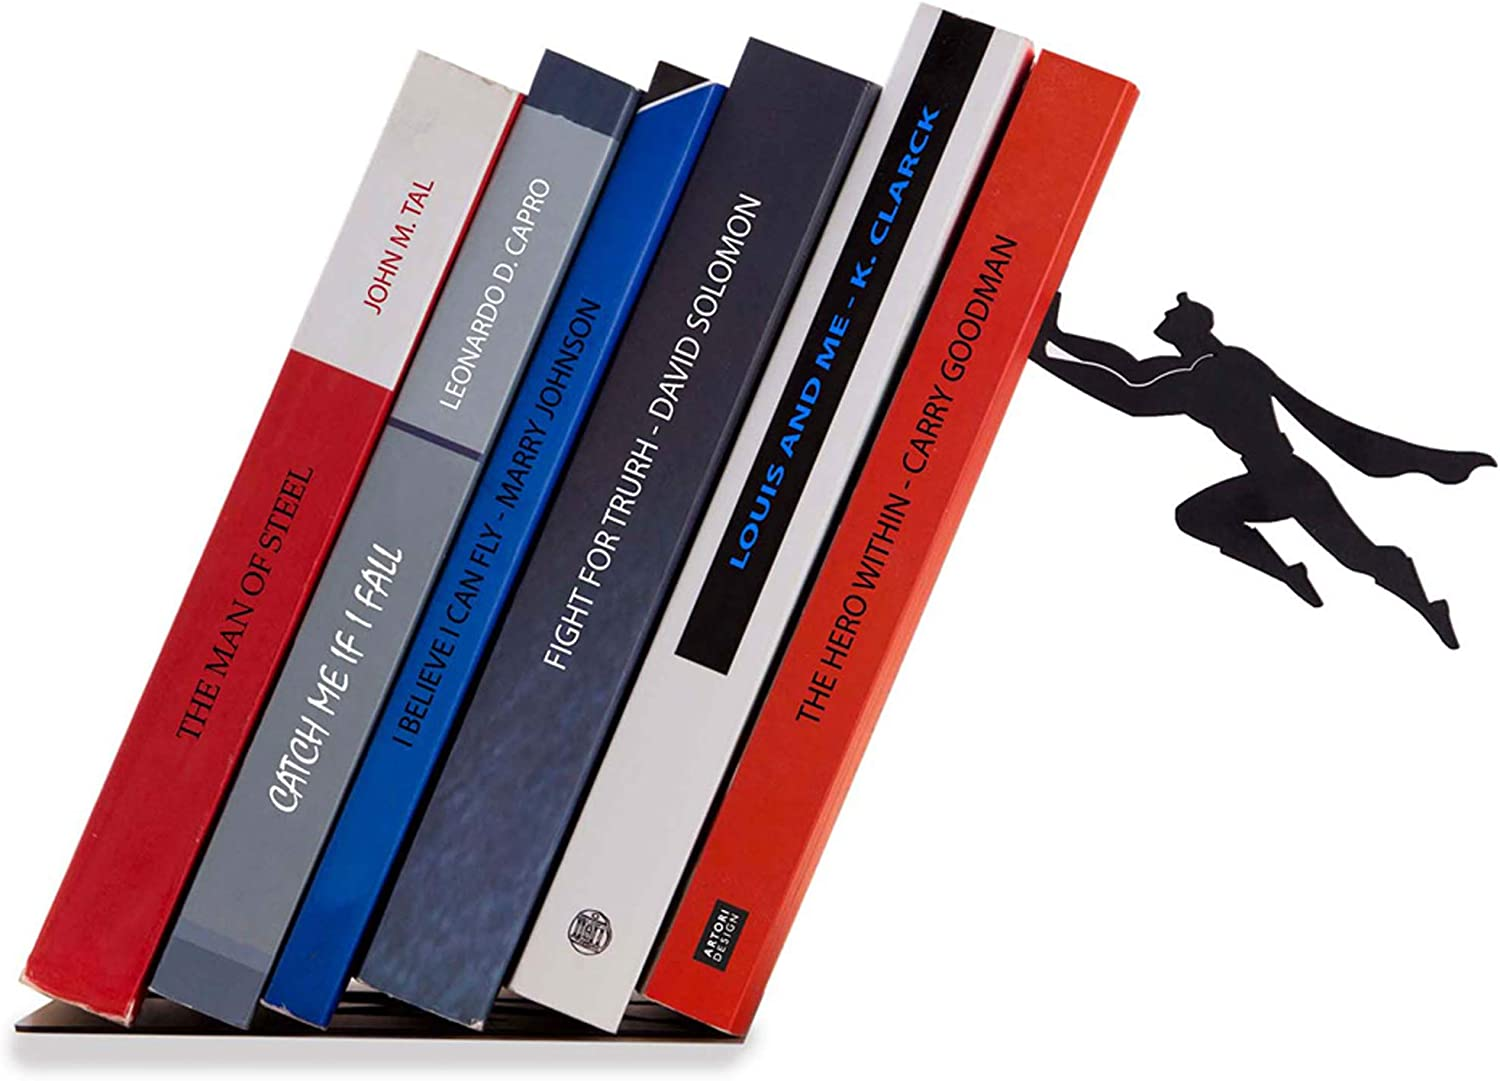 Artori Design Decorative Bookends for Shelf or Desk - Black Metal Book Ends - Superhero Bookend - Book Ends for Office - Cool Super Hero Book Stopper/Book Holder/Shelf Dividers - Book & Hero